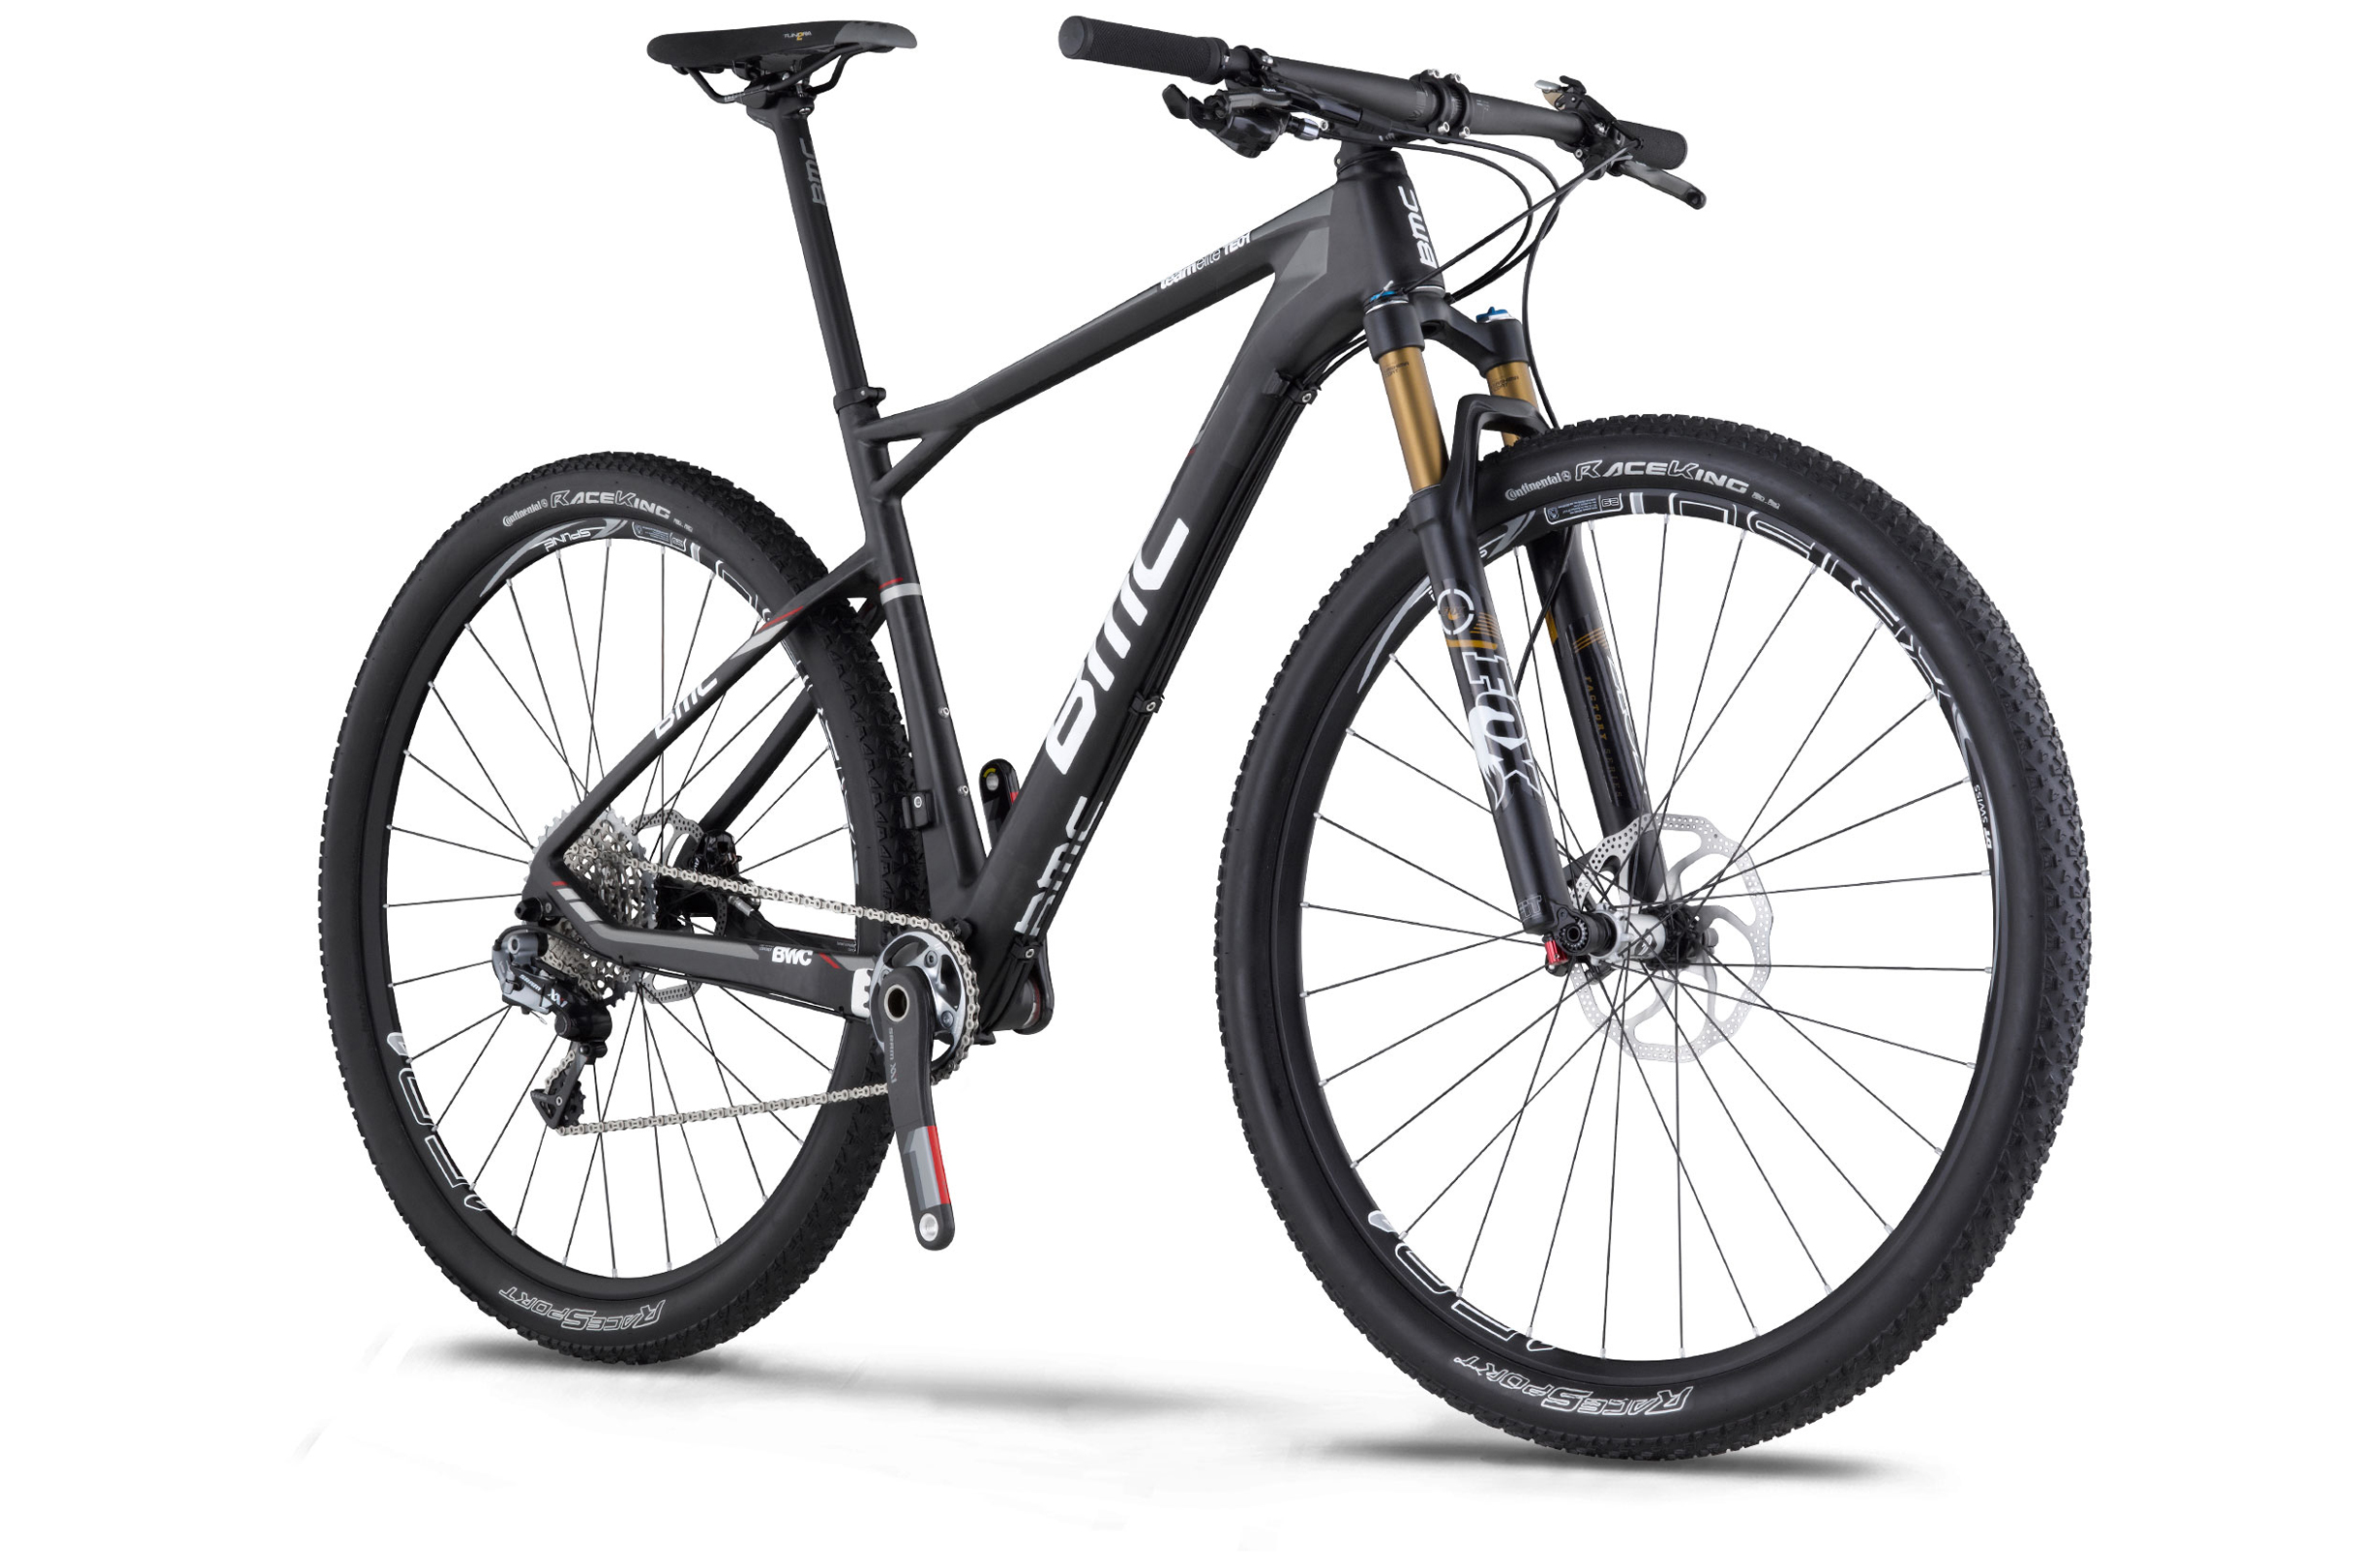 2b2e6472142 BMC Teamelite TE01 29er XX1 2014 review - The Bike List